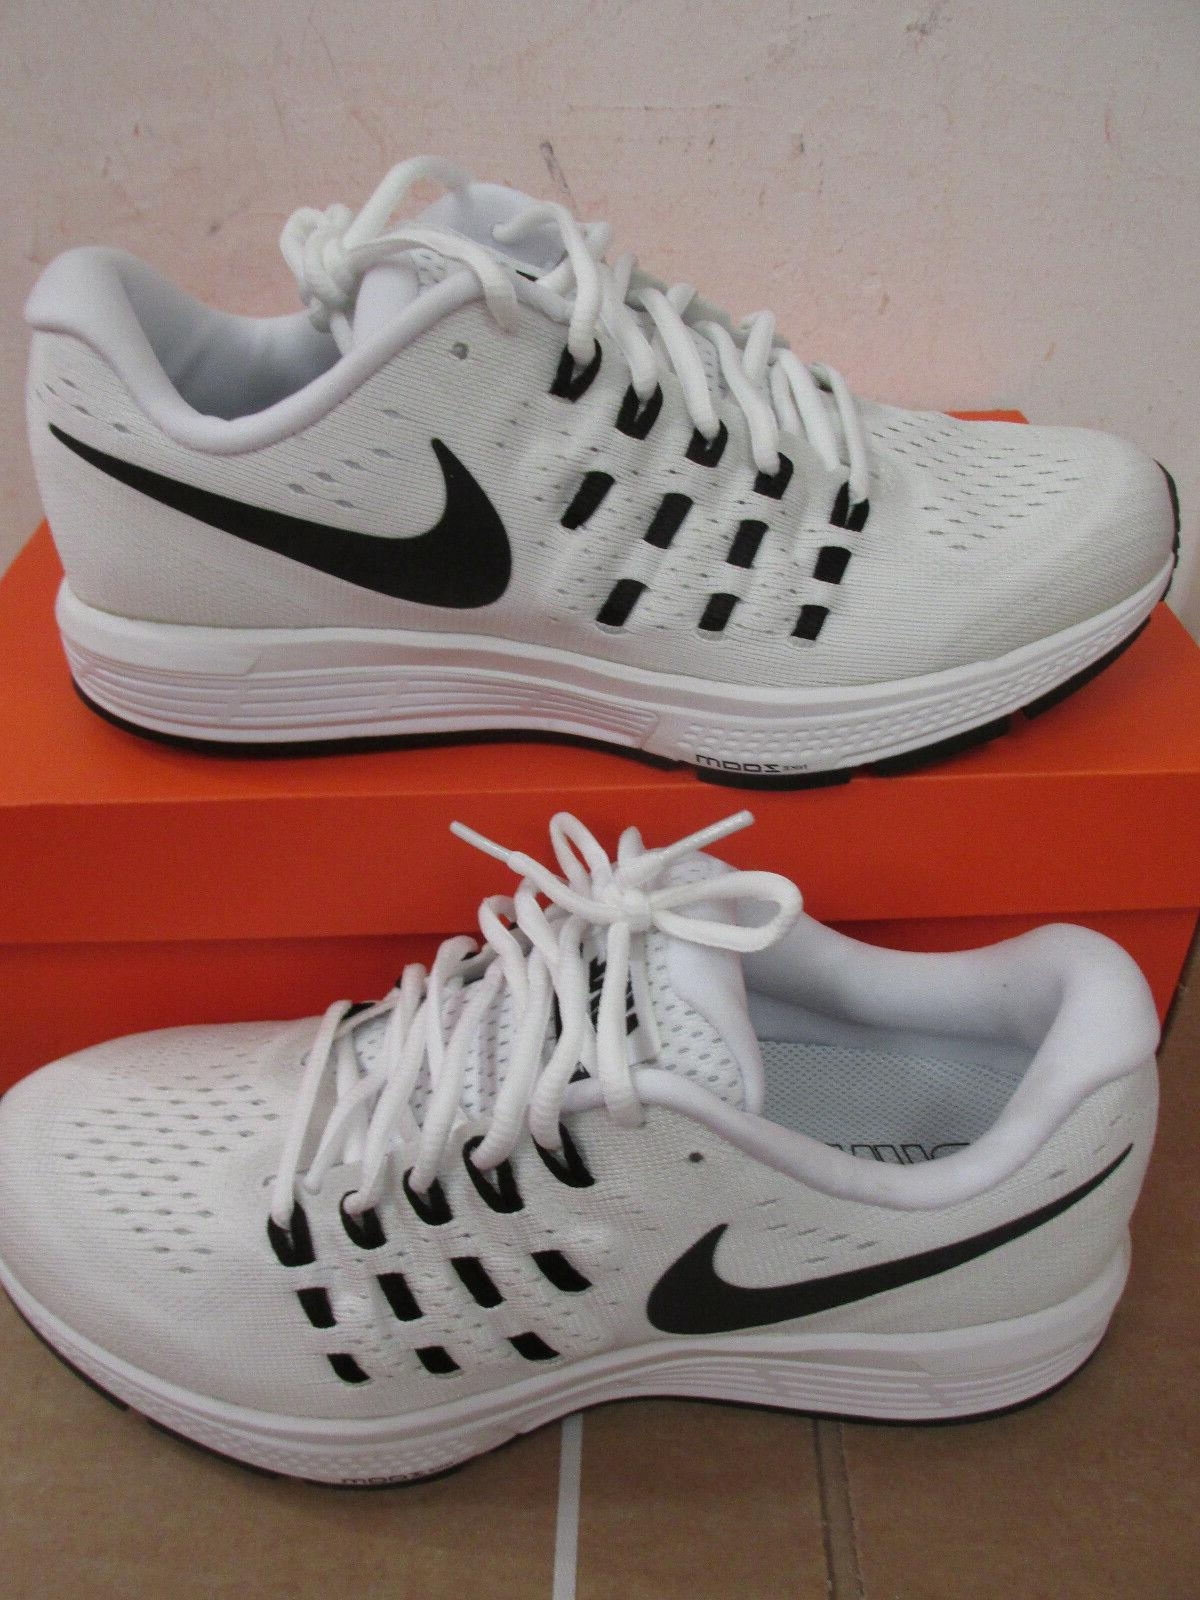 air zoom vomero 11 tb mens trainers